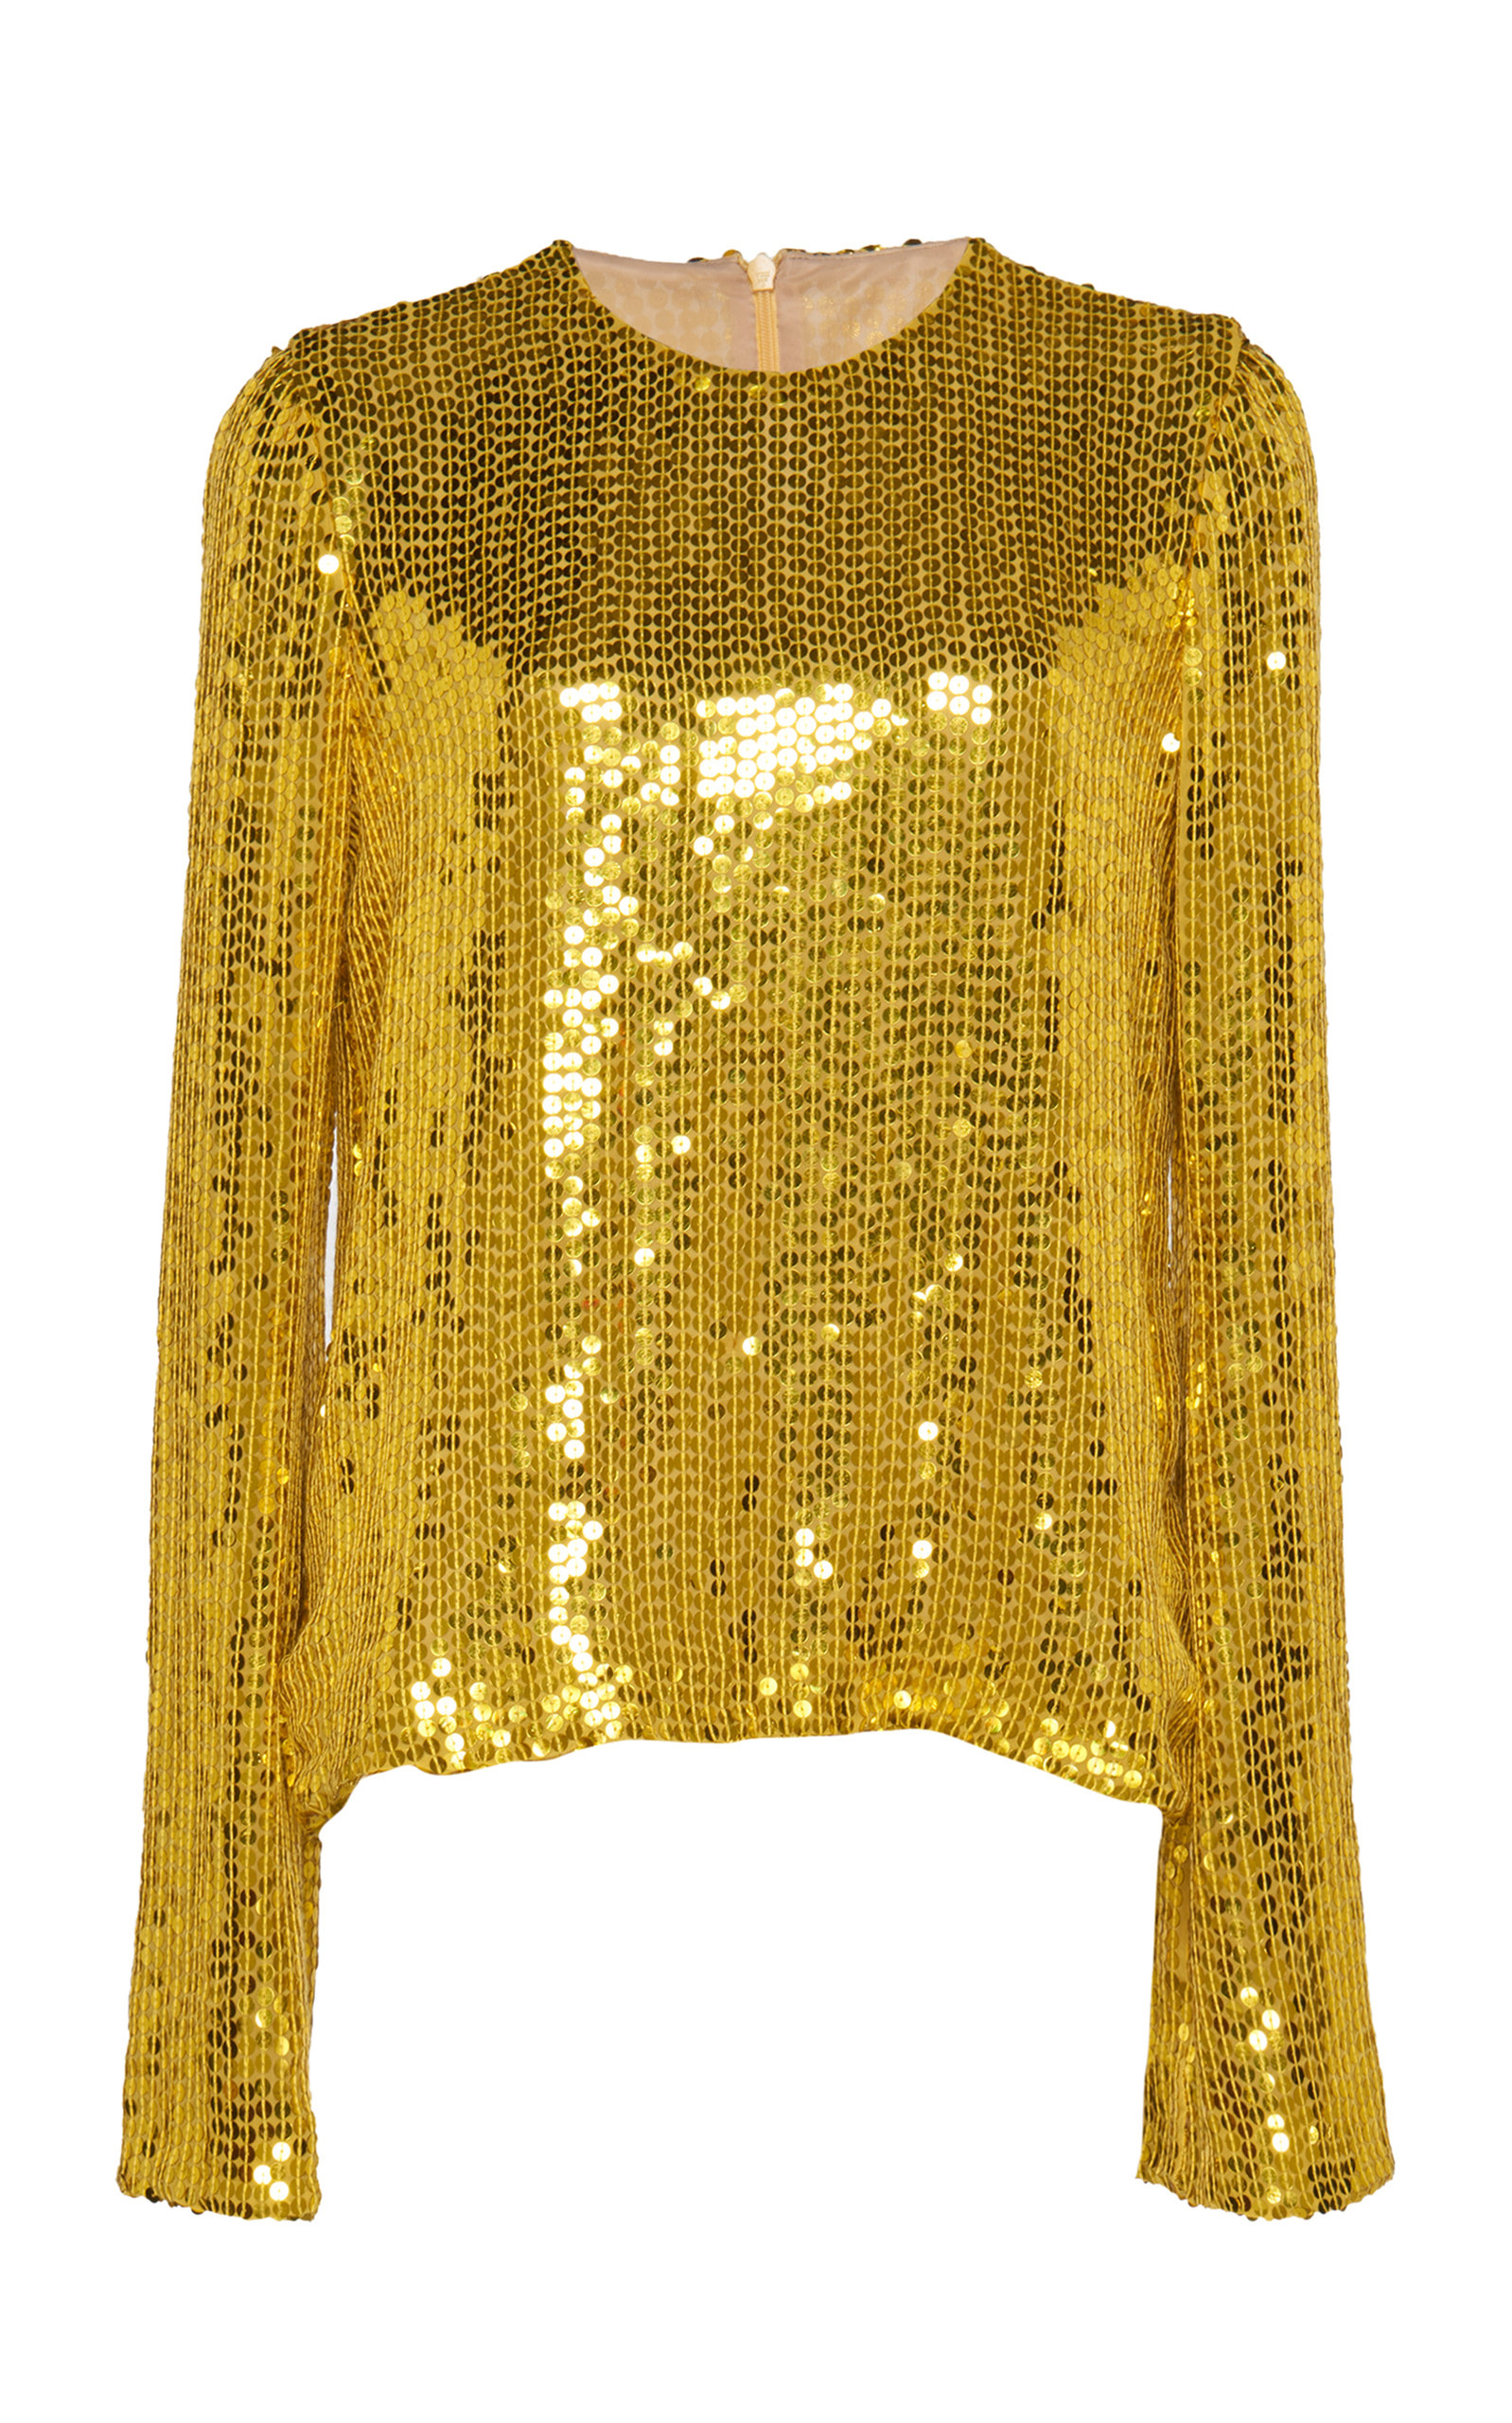 CLARA SEQUIN TOP